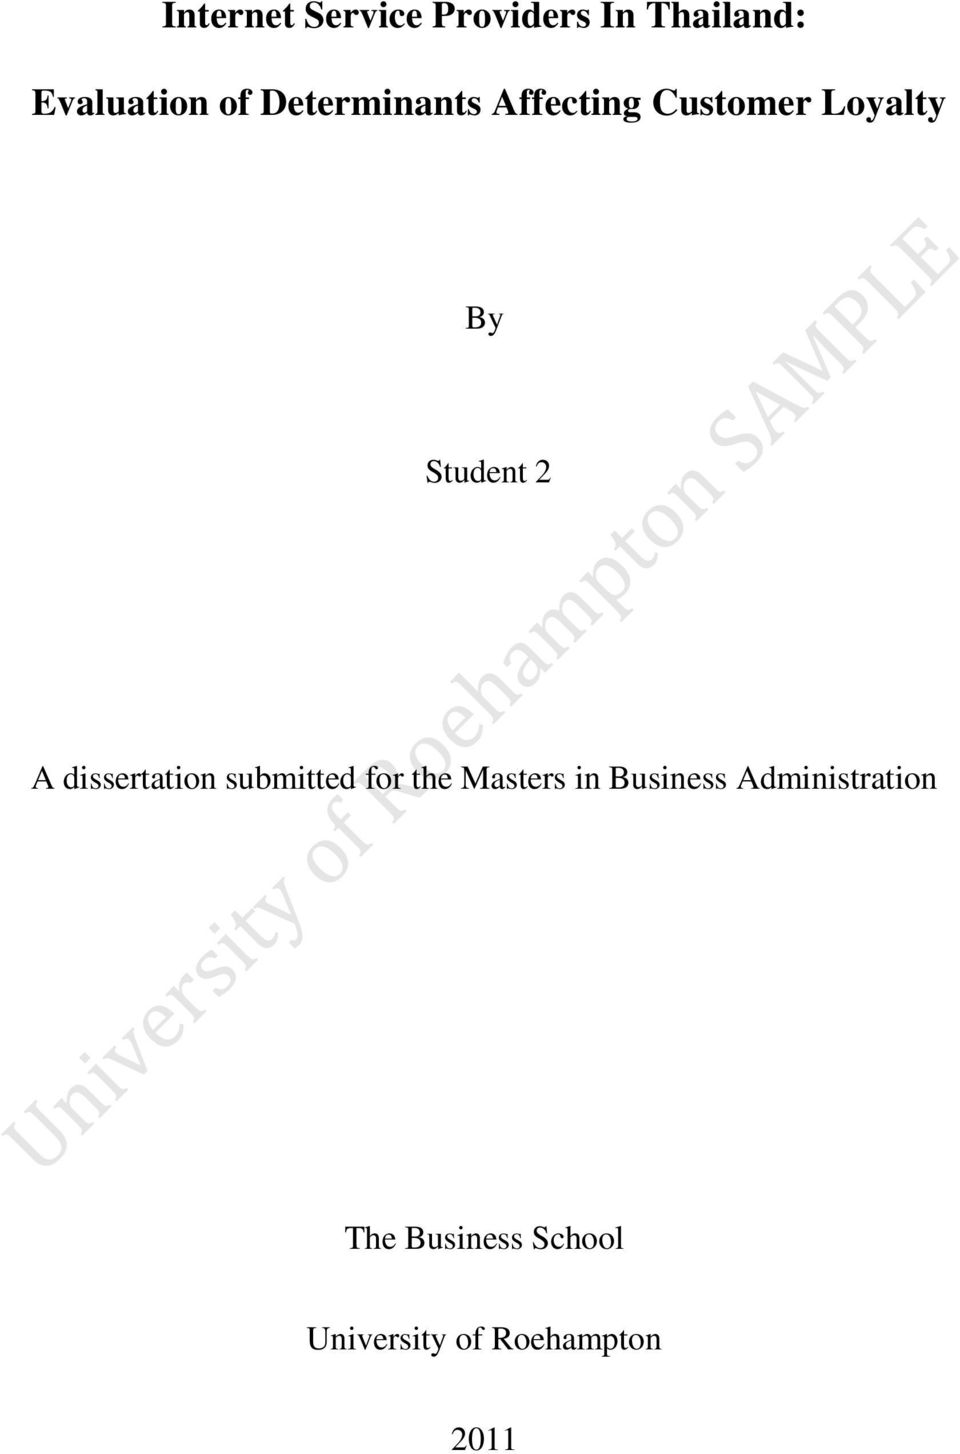 dissertation submitted for the Masters in Business